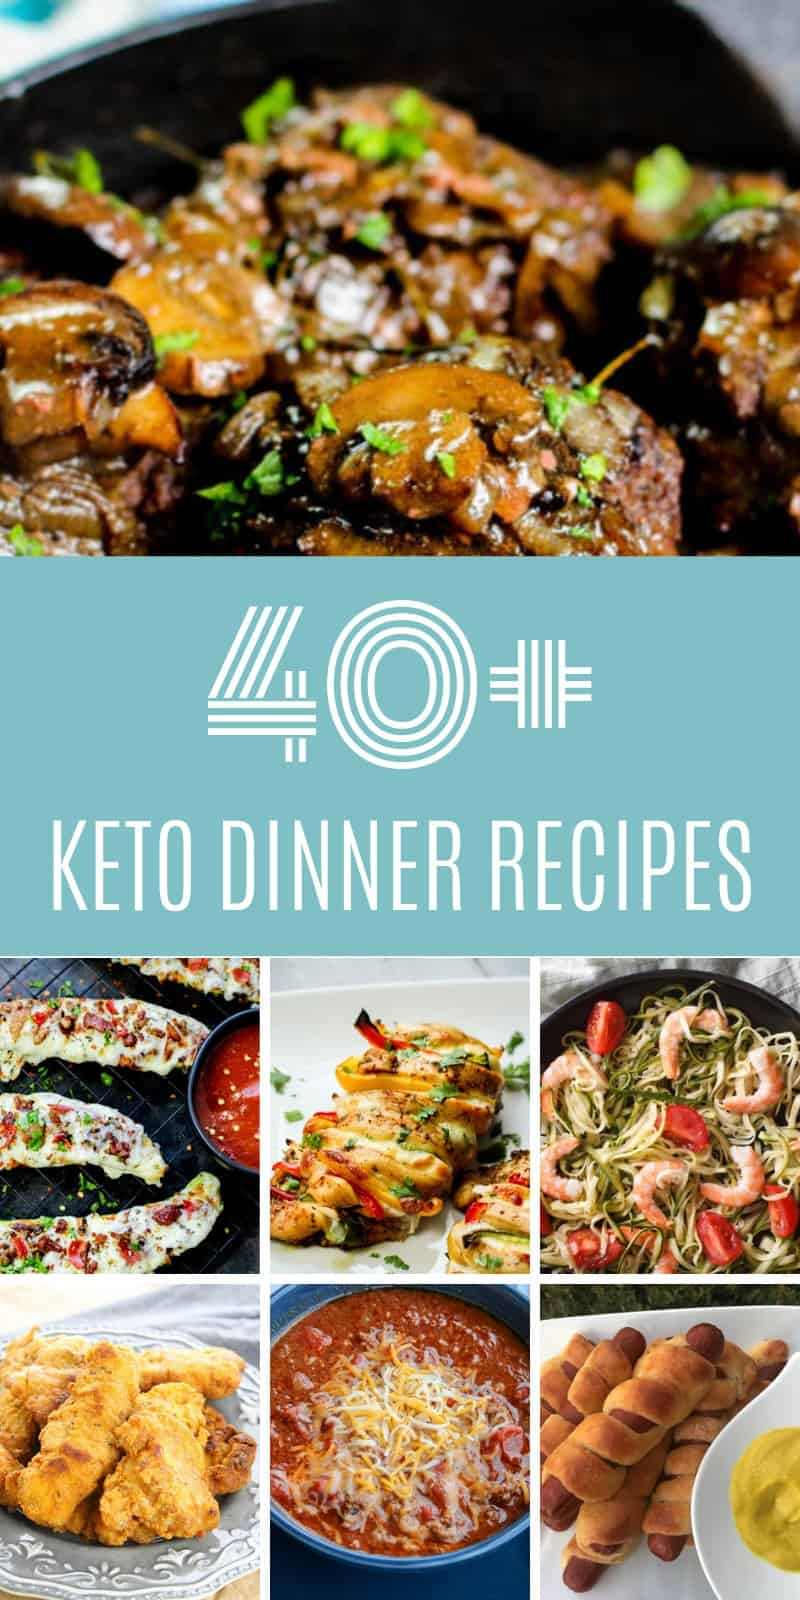 These 40+ keto dinner recipes are all amazing and I know you are going to love them too! Add a few to your meal plan this week and try them all over the next few weeks...you won't regret it!